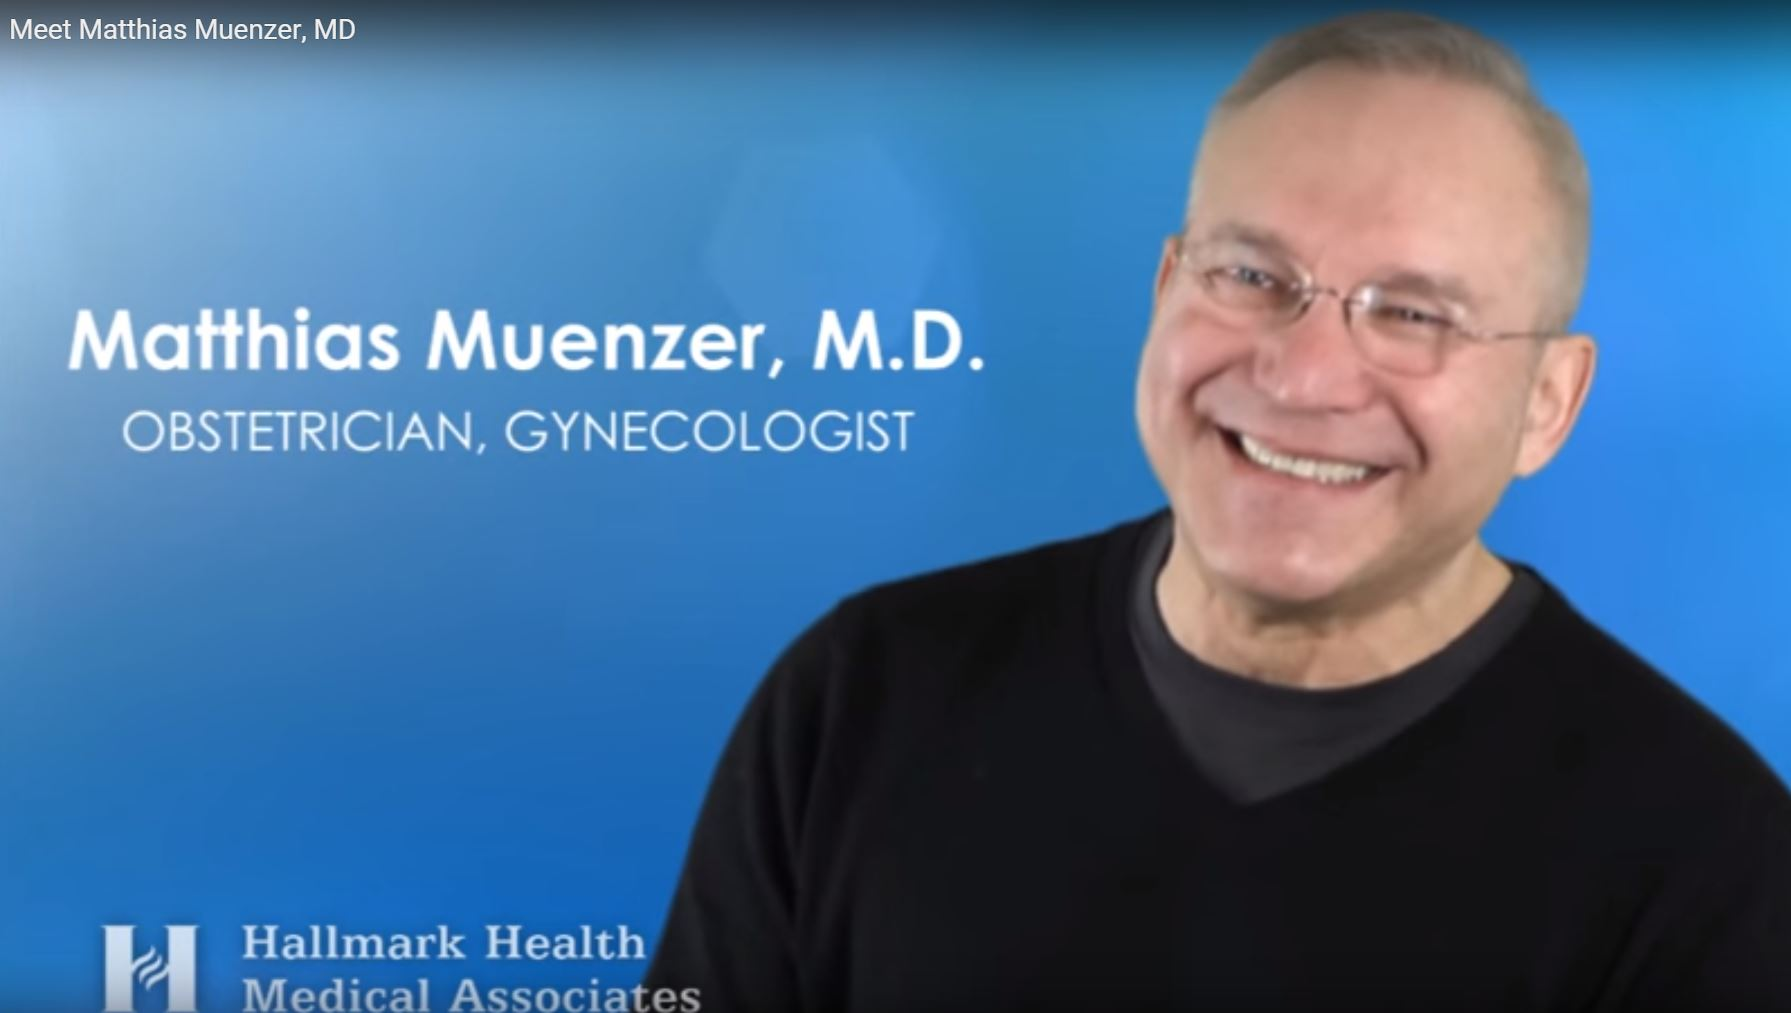 Dr. Muenzer talks about his practice